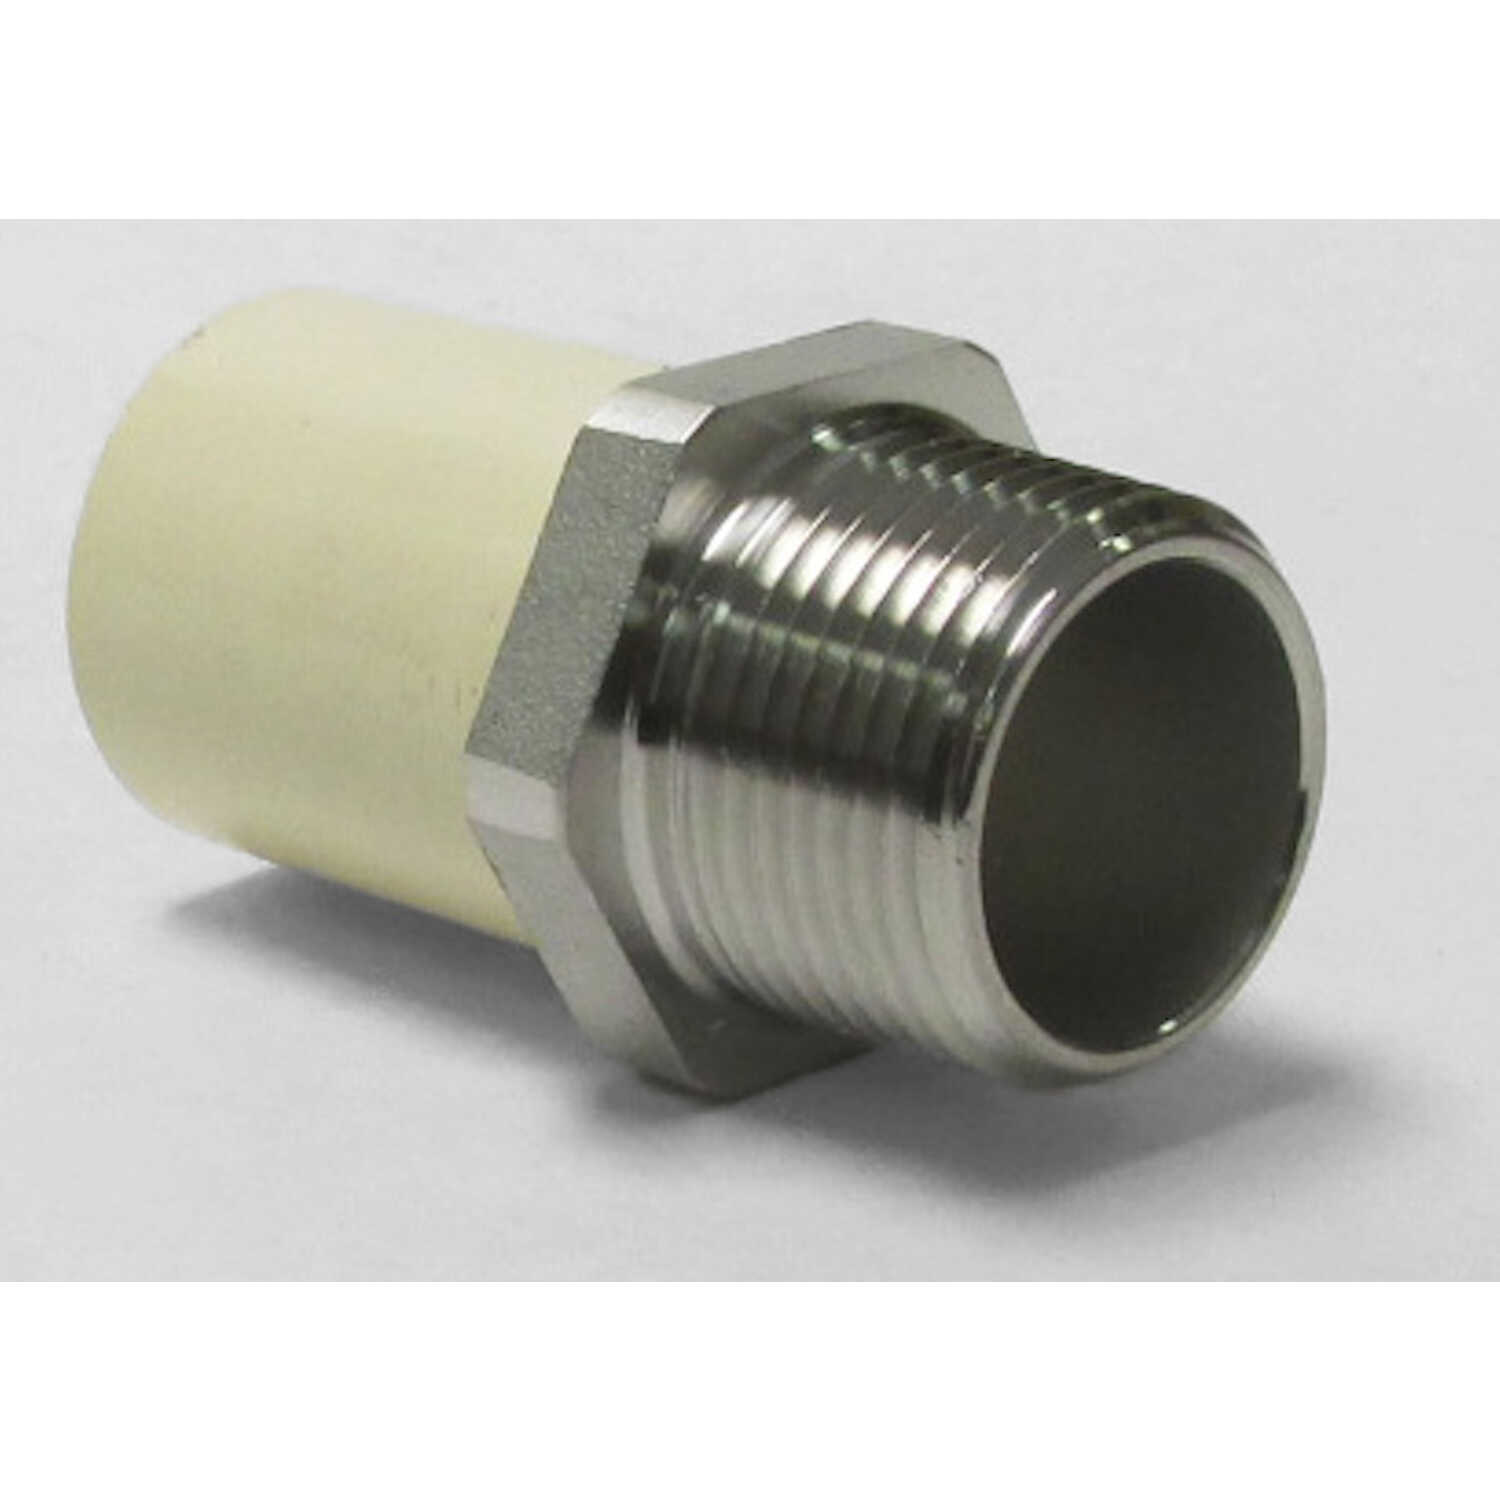 KBI  1/2 in. MPT   x 1/2 in. Dia. Slip  Transition Adapter